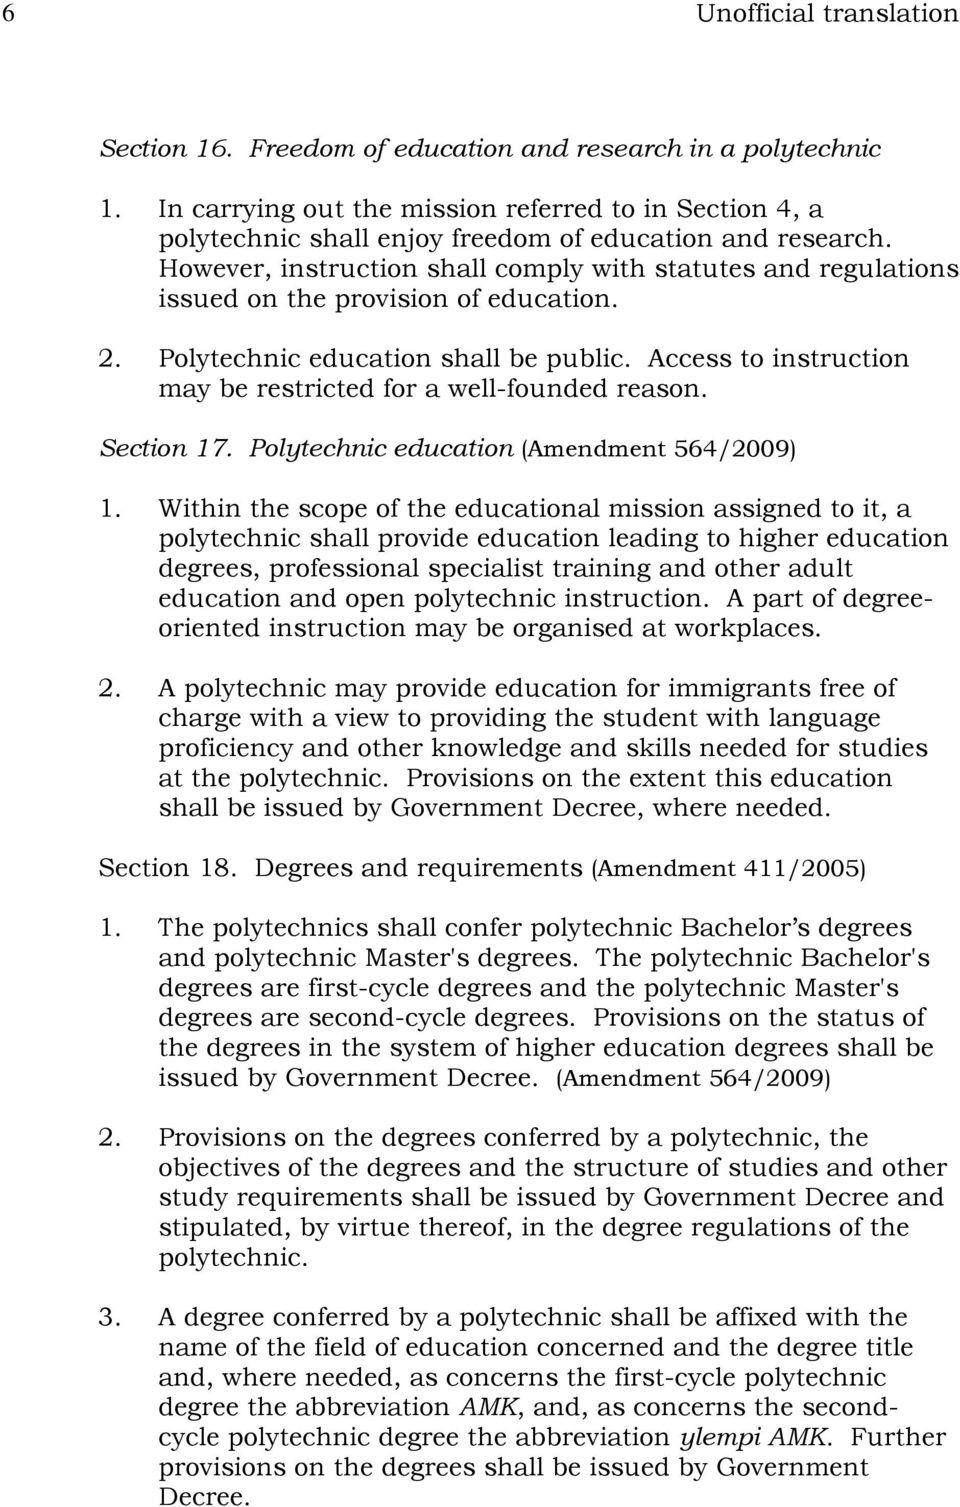 However, instruction shall comply with statutes and regulations issued on the provision of education. 2. Polytechnic education shall be public.